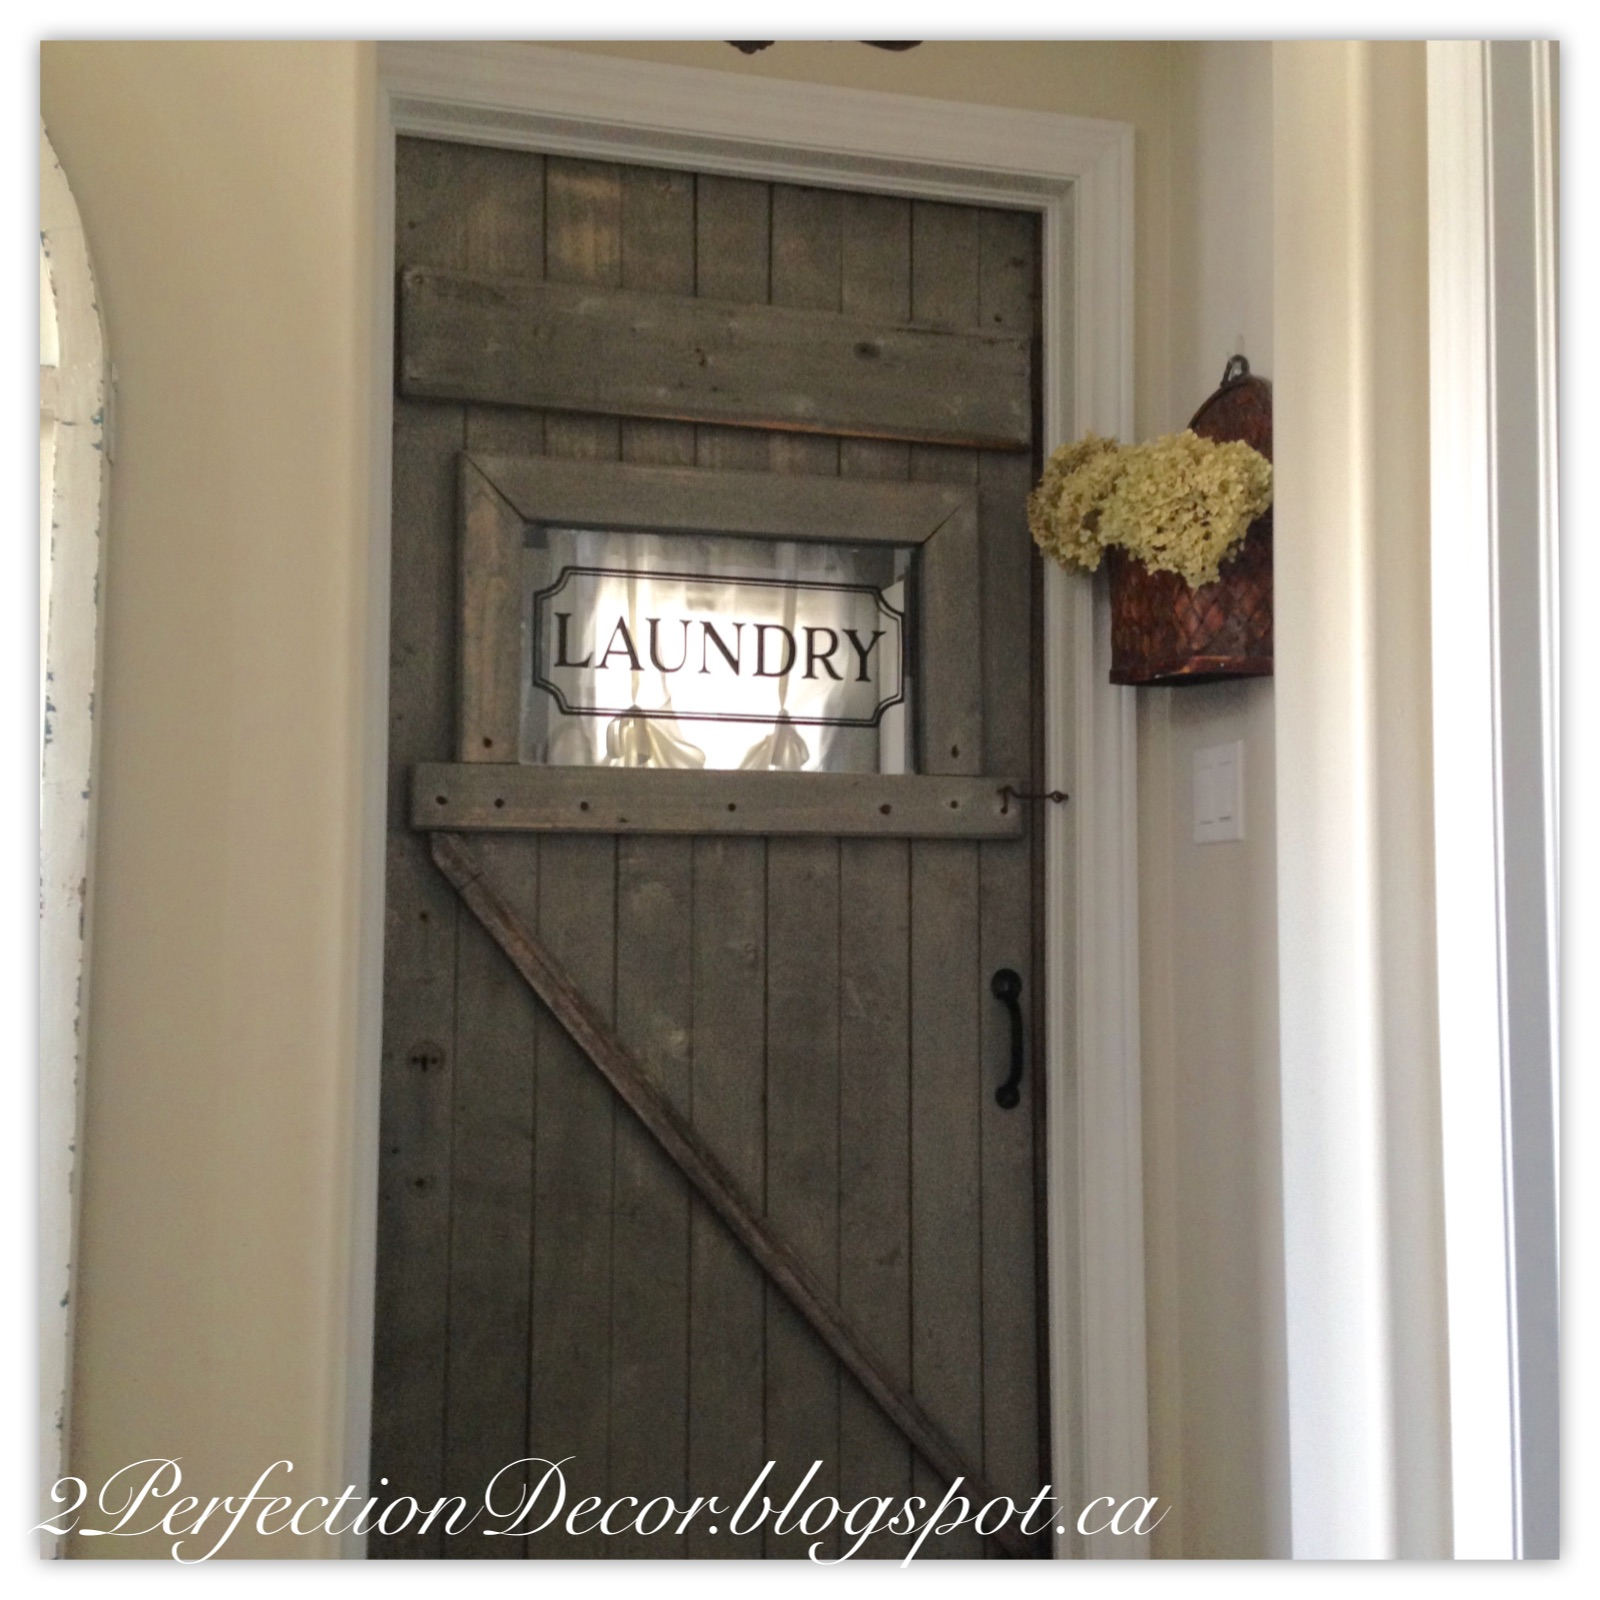 2Perfection Decor: Antique Barn Door as our Laundry room door